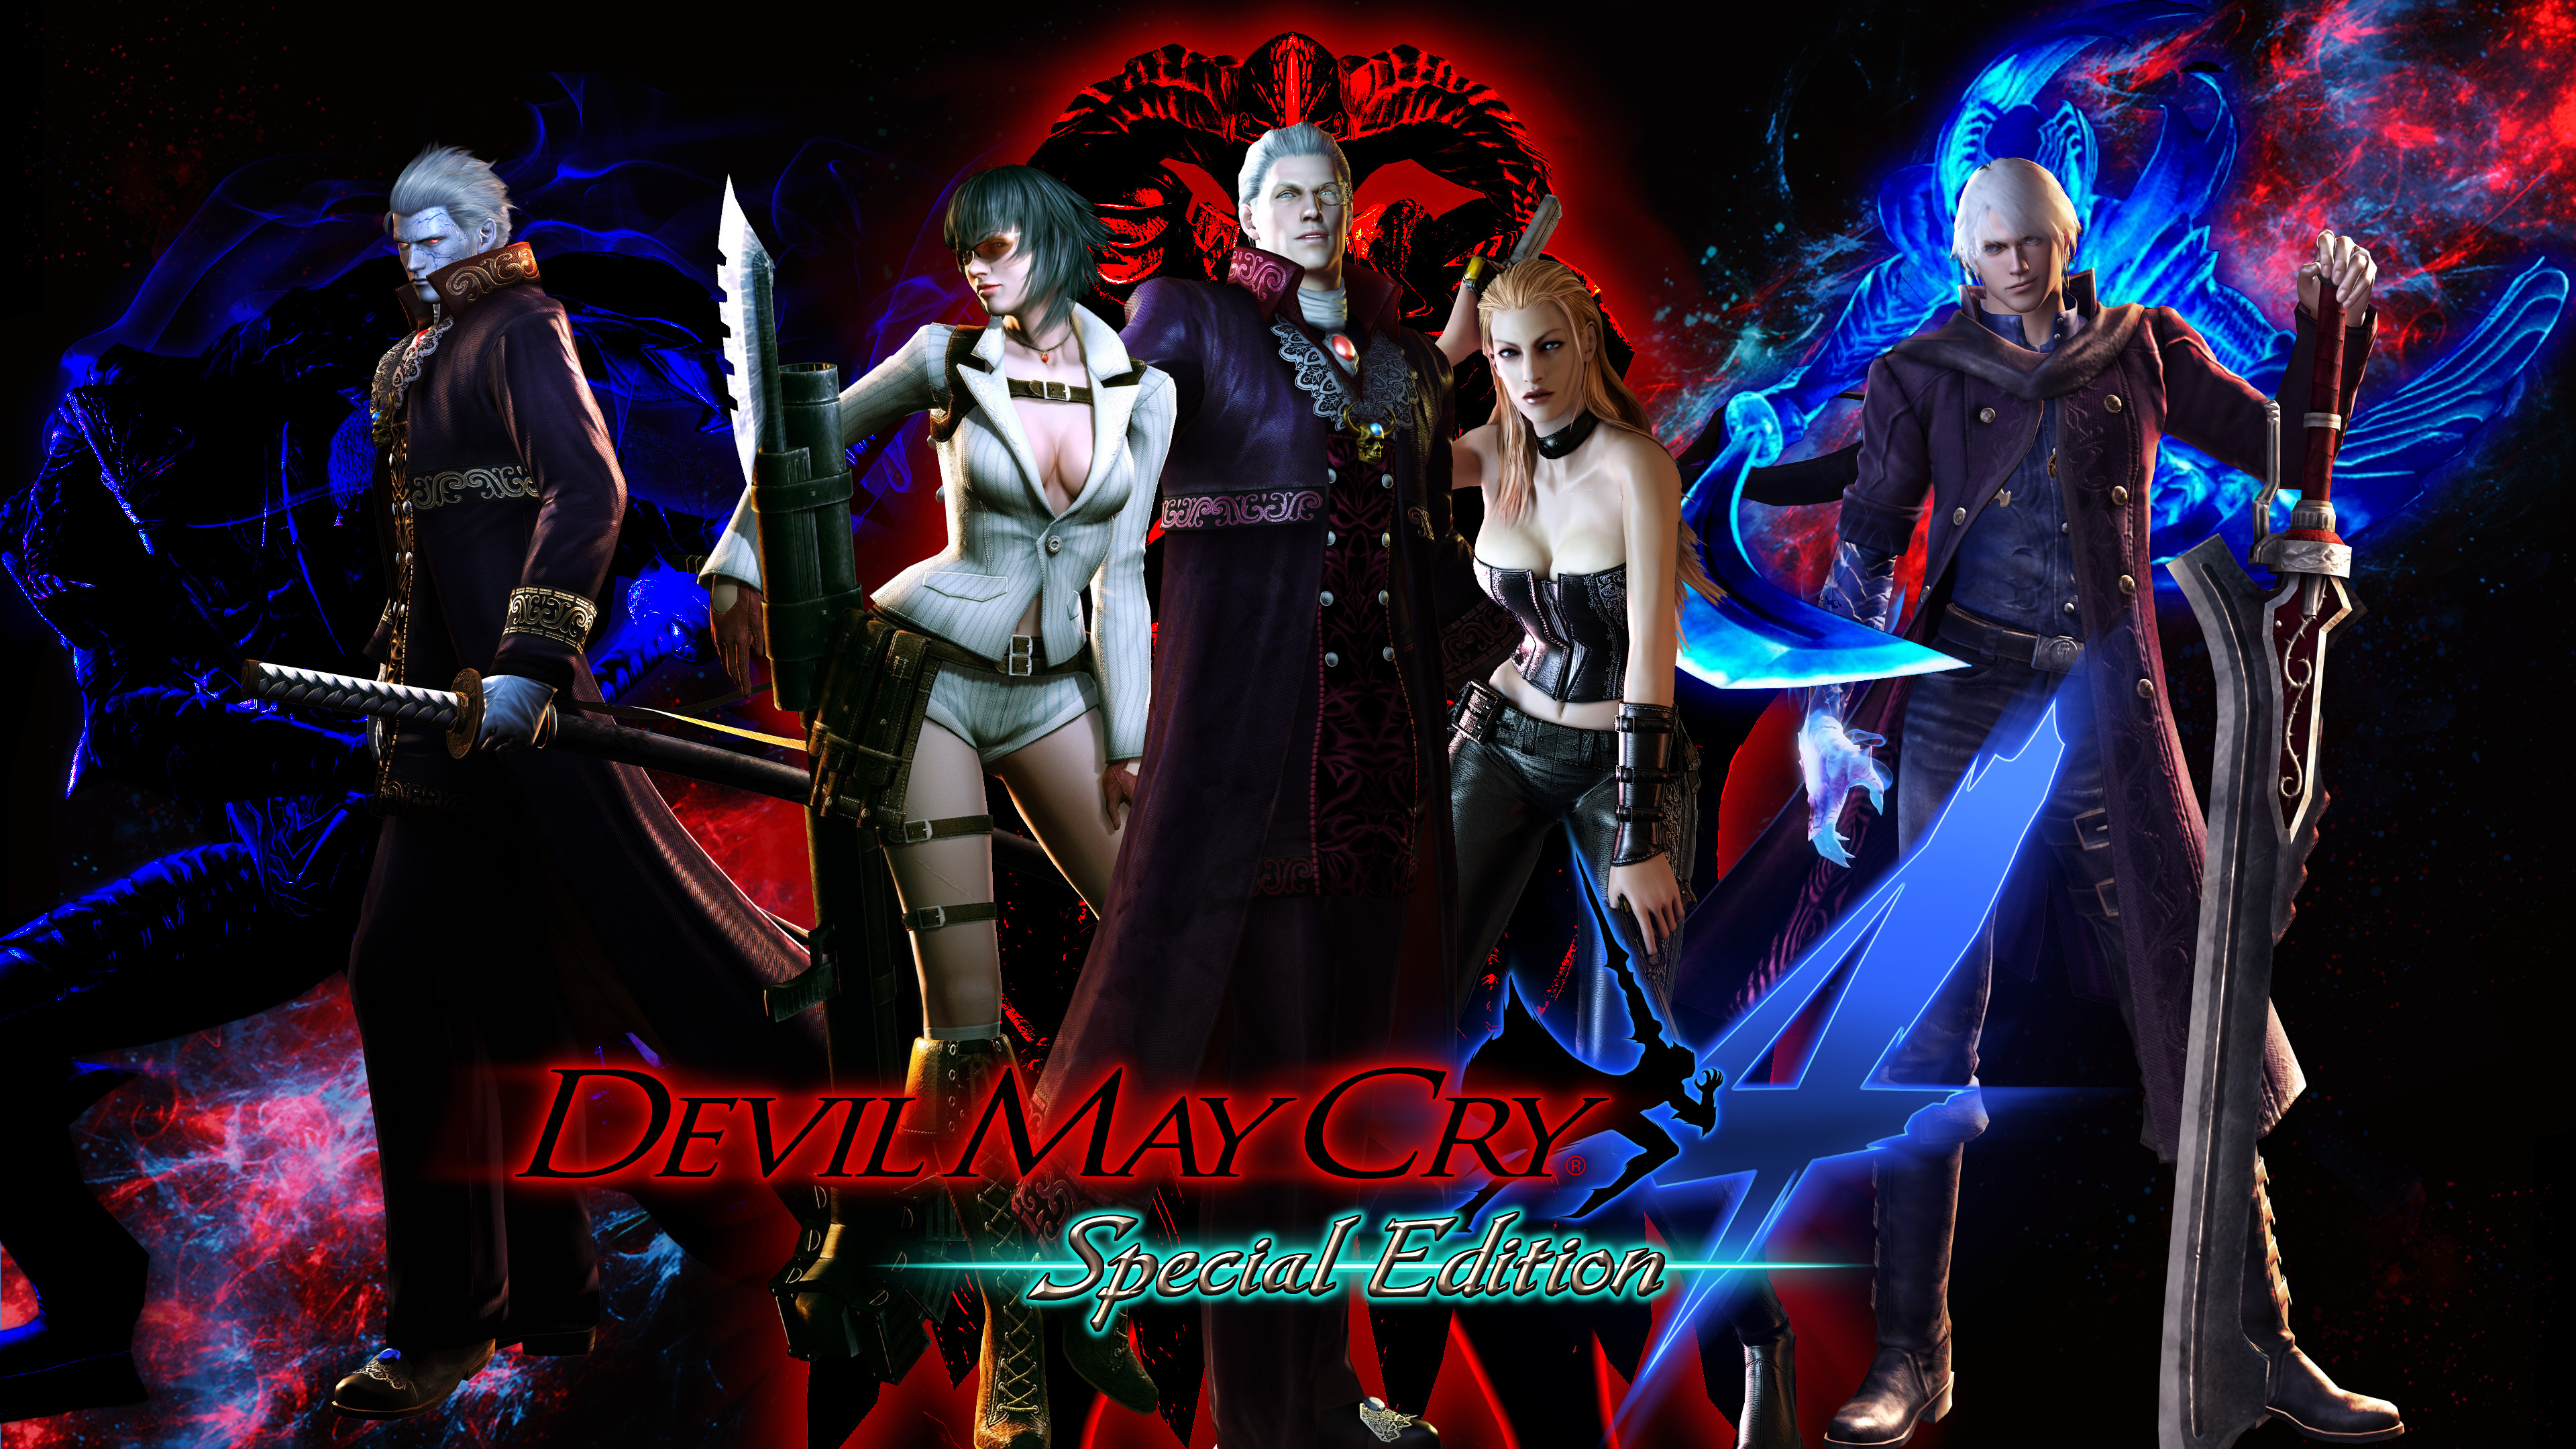 Devil May Cry 4 Special Edition By Demonslayer1337 On Deviantart